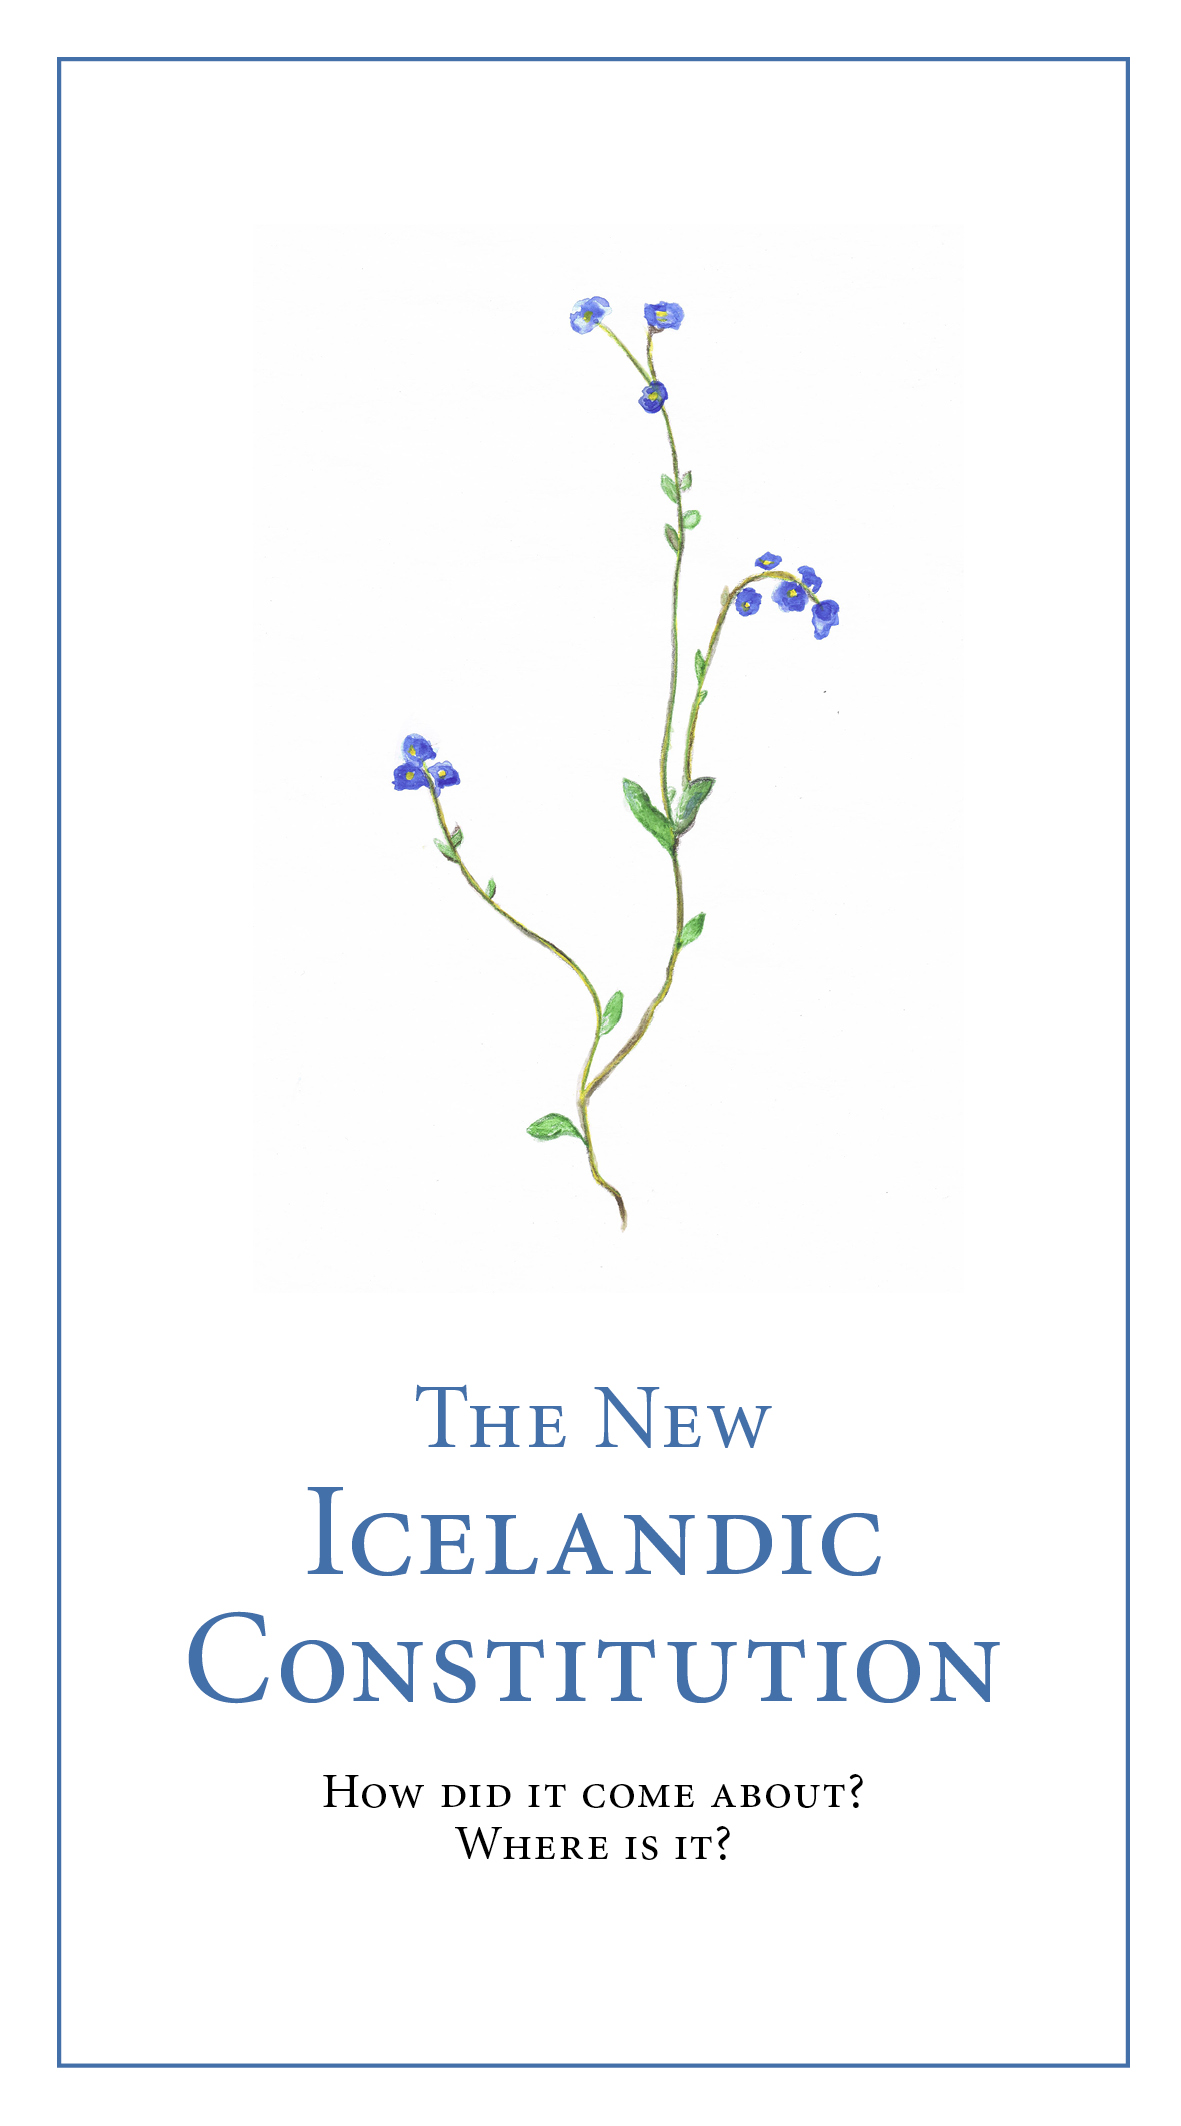 The New Icelandic Constitution: How did it come about? Where is it?